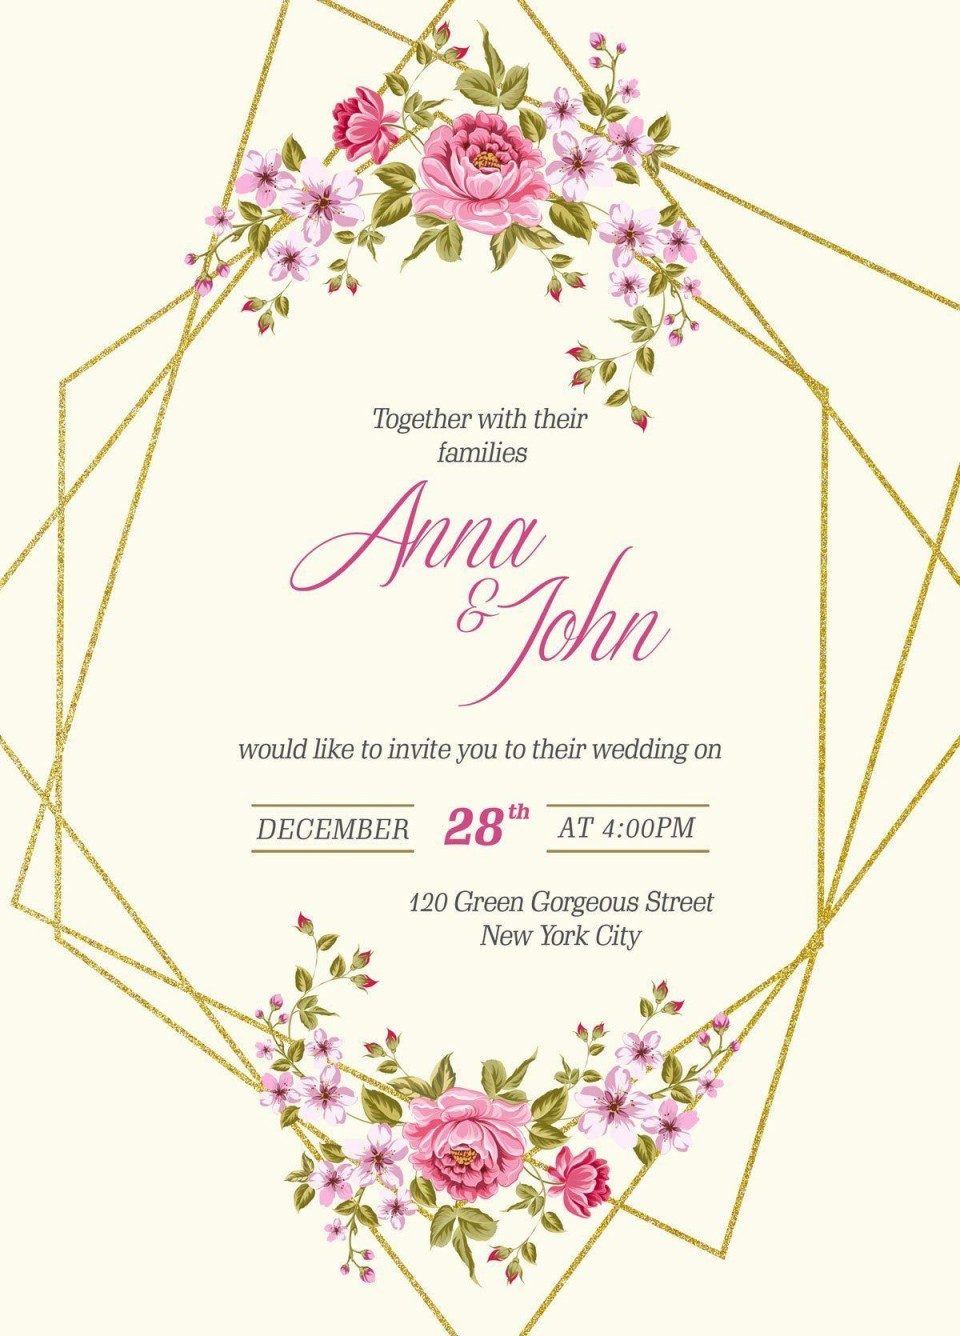 005 Wondrou Download Free Wedding Invitation Card Template Concept  Indian-traditional-wedding-invitation-card-psd-template-free-download Indian Psd Format960